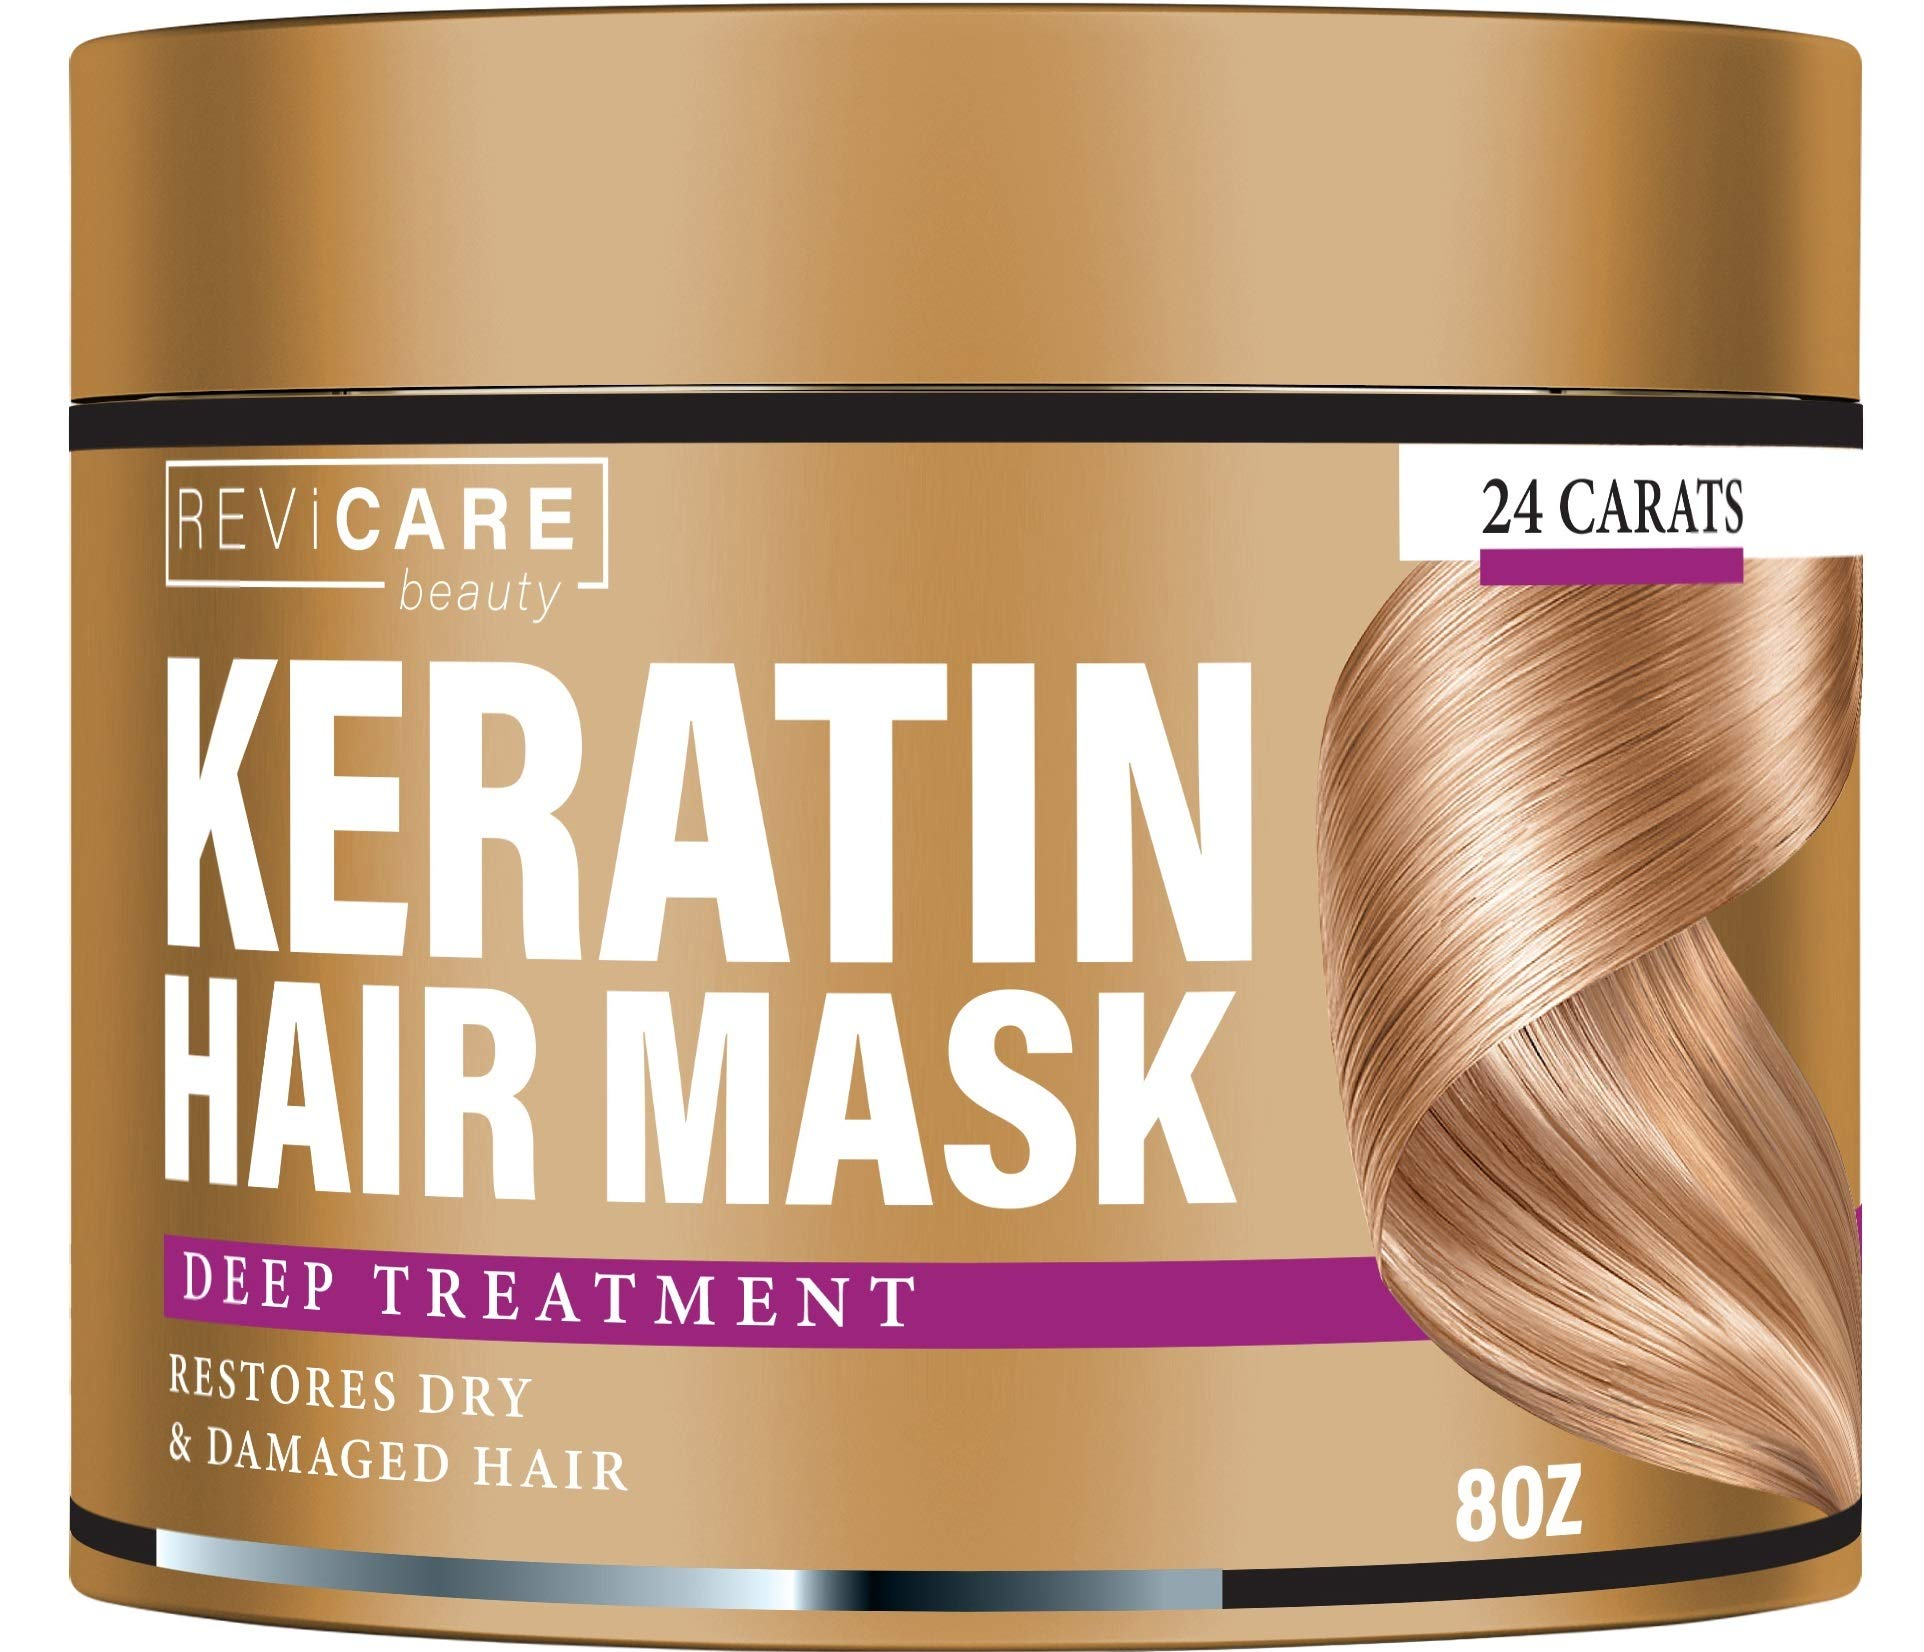 Keratin Hair Mask - Restores Dry & Damaged Hair - Effective Keratin Treatment with Coconut Oil, Retinol & Aloe Vera - Made in USA - Moisturizing Anti Frizz Hair Mask - Powerful Keratin Complex by Revicare beauty